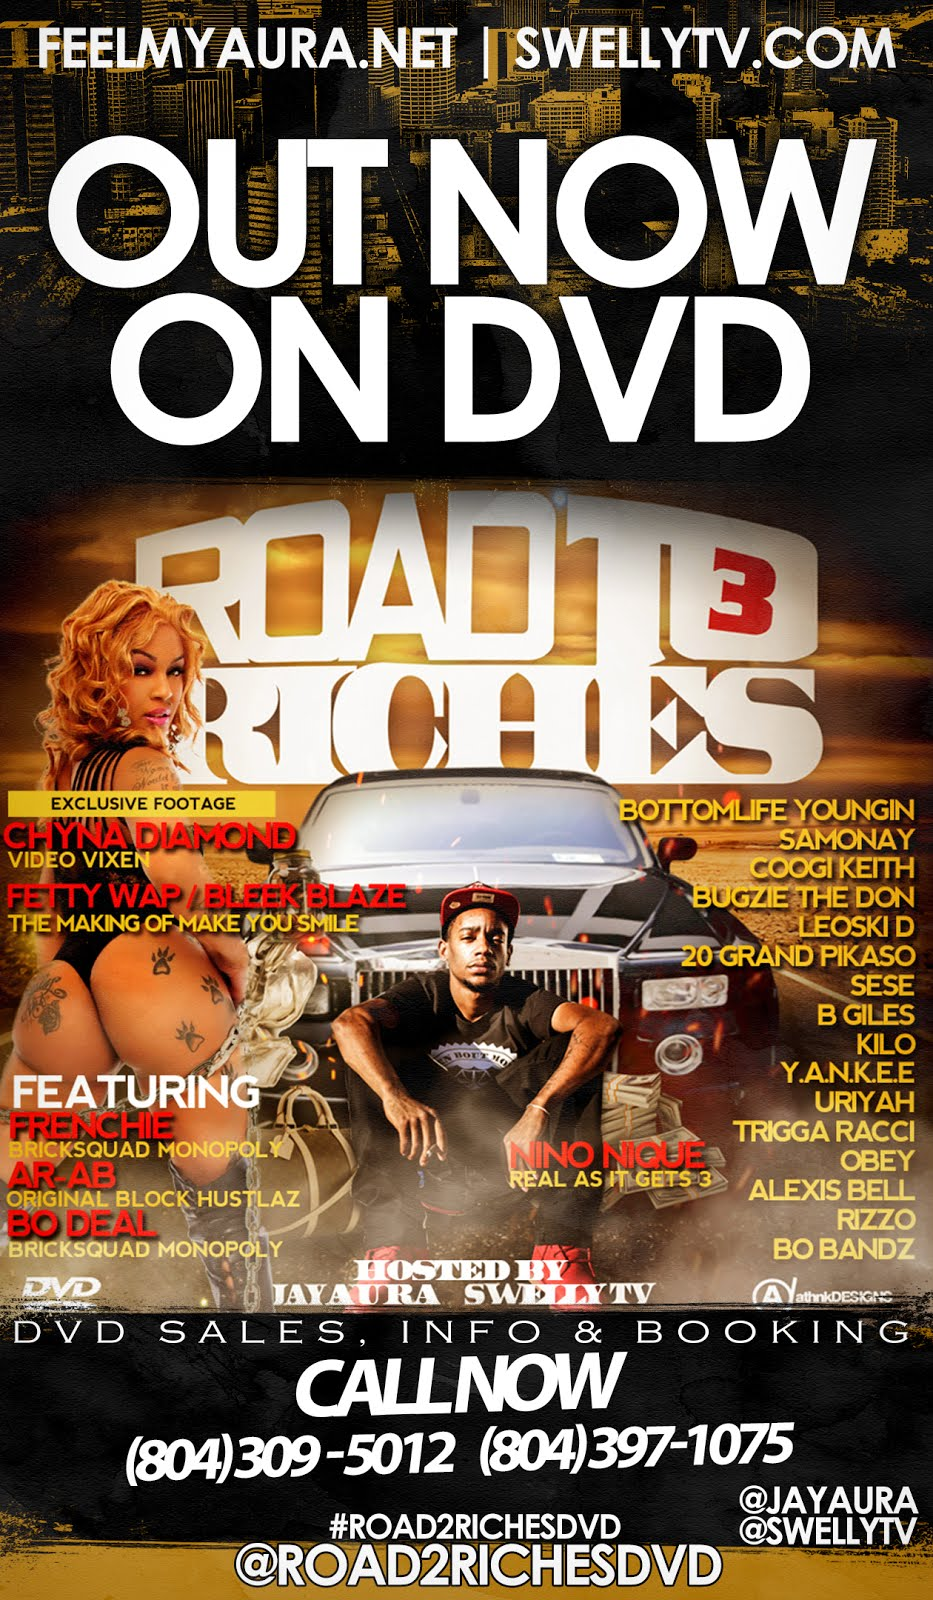 Road 2 Riches DVD 3 Out Now